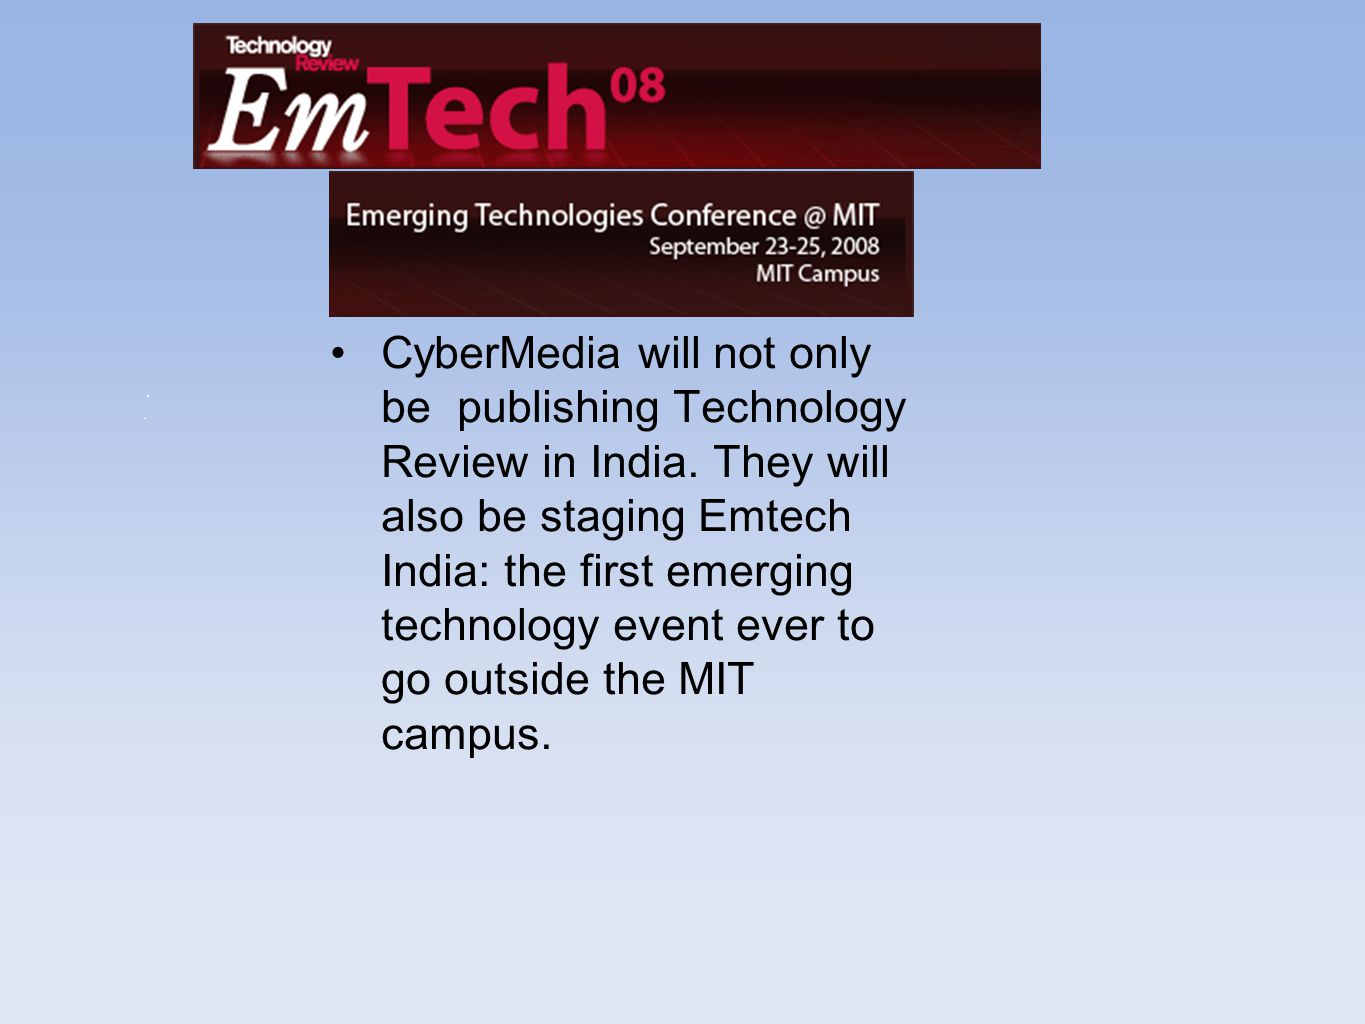 CyberMedia will not only be publishing Technology Review in India.